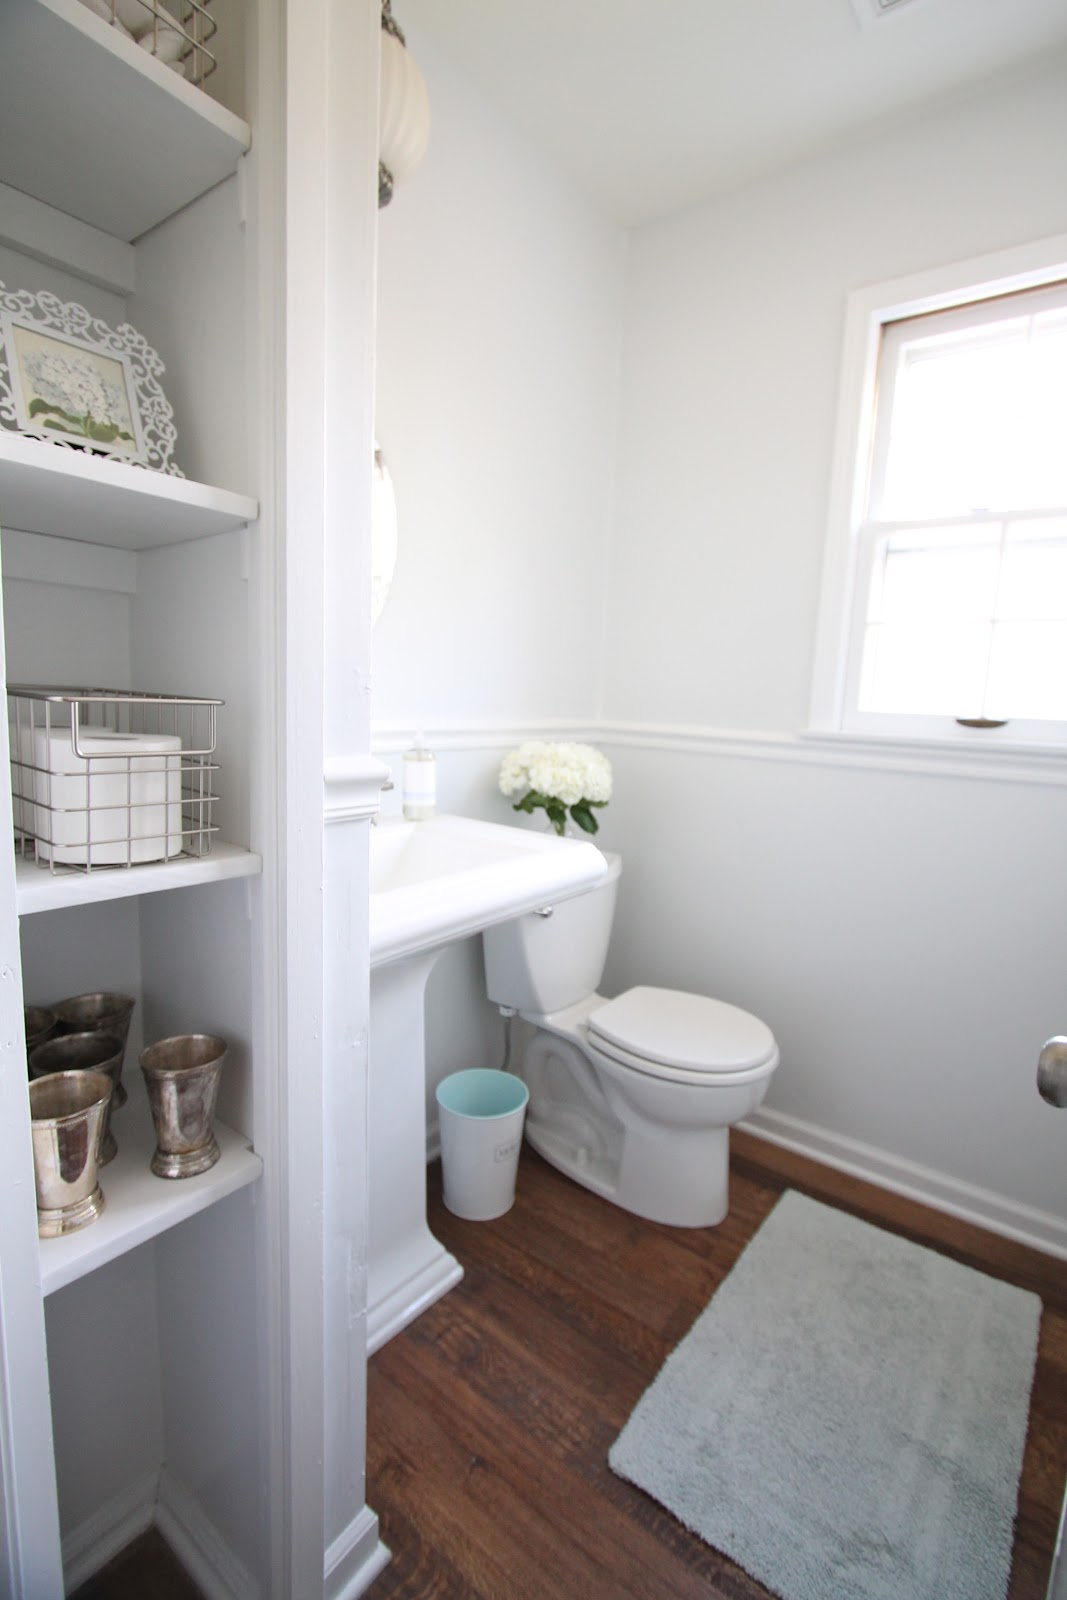 Bathroom Remodeling On A Budget diy bathroom remodel - julie blanner